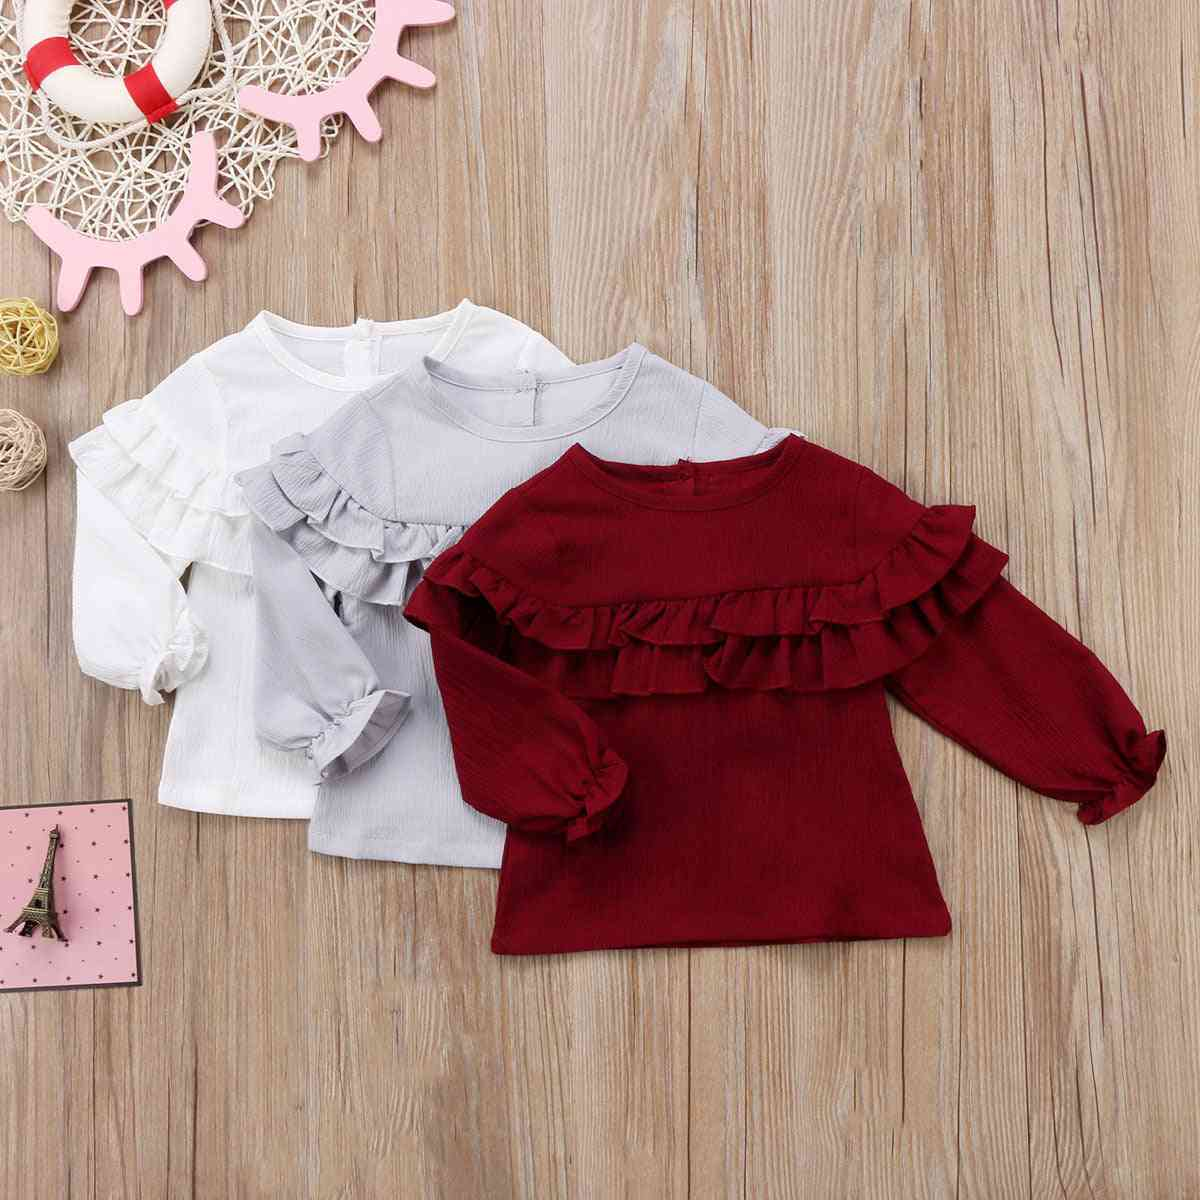 Infant Baby Girl Cotton Ruffles Long Sleeve Blouse Shirt / Tops Clothes